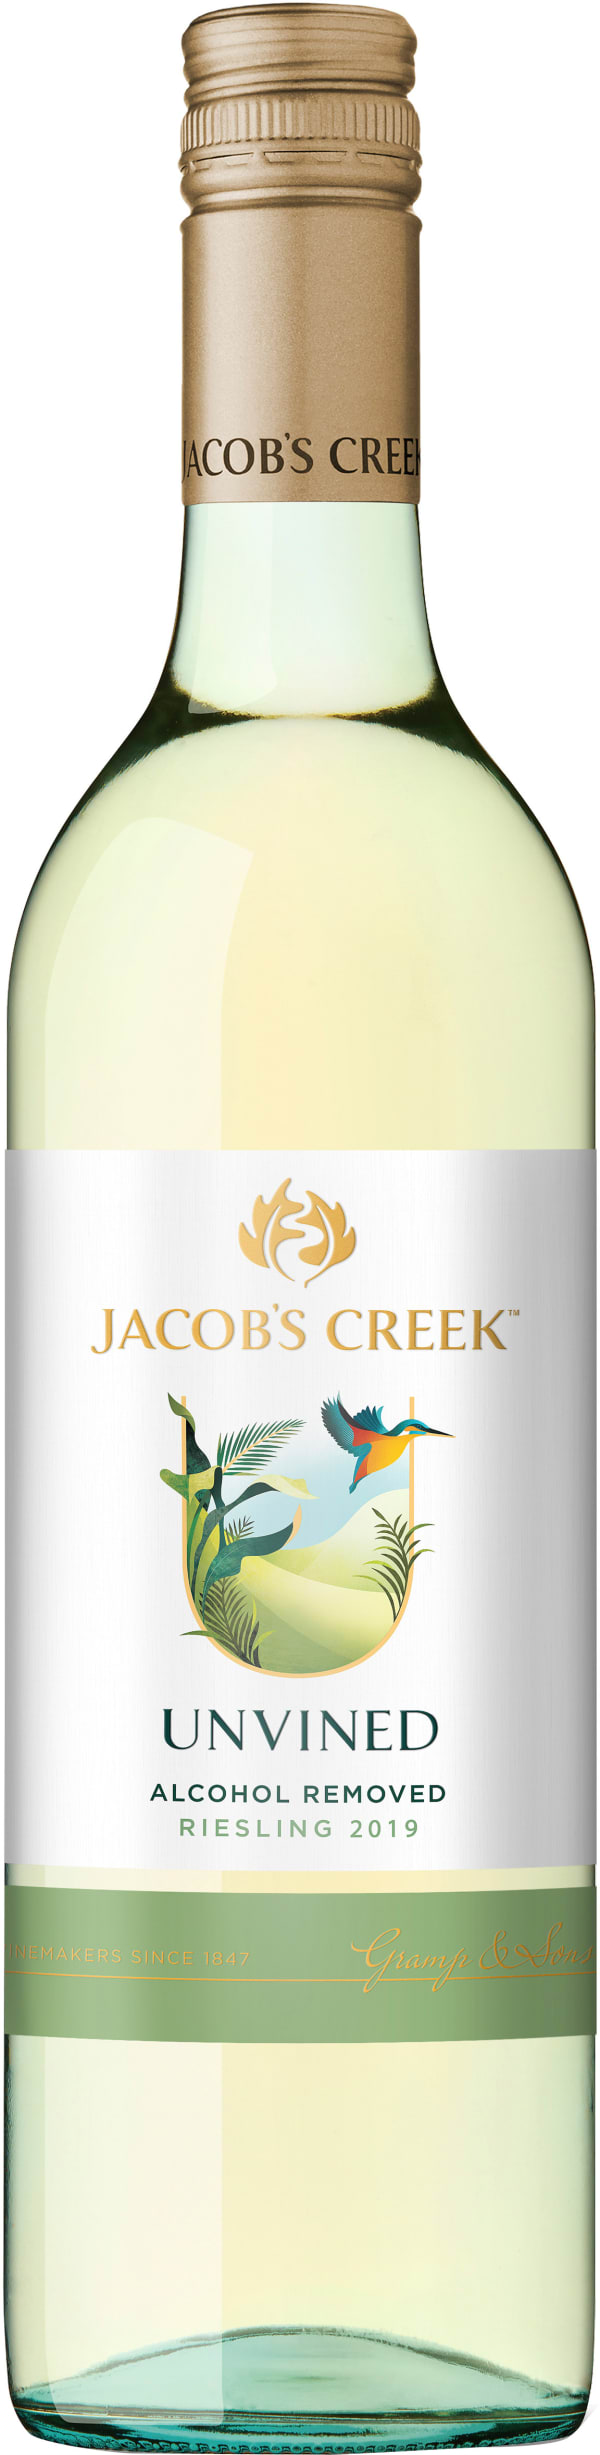 Jacob's Creek UnVined Riesling 2019